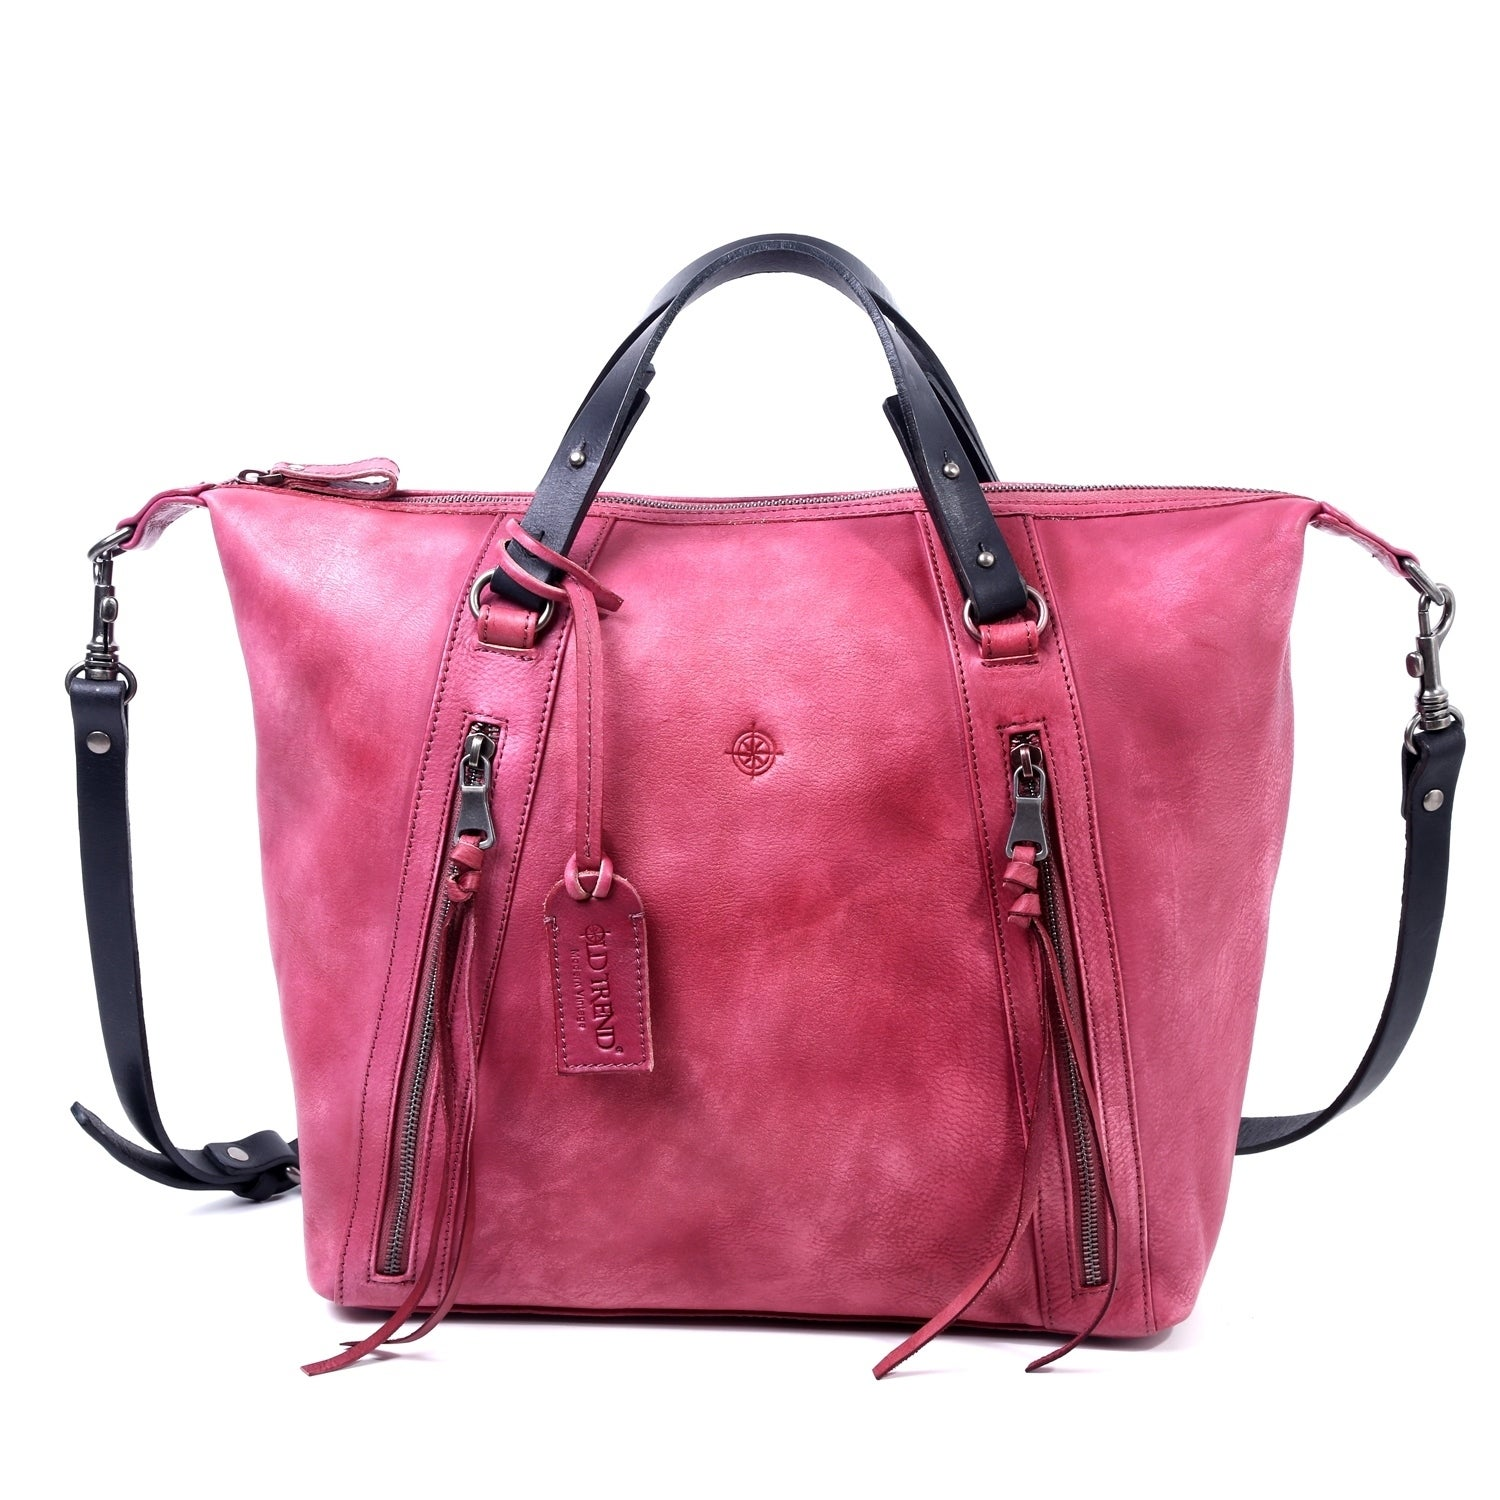 ead957ec8a7 Buy Purple Leather Bags Online at Overstock | Our Best Shop By Style ...